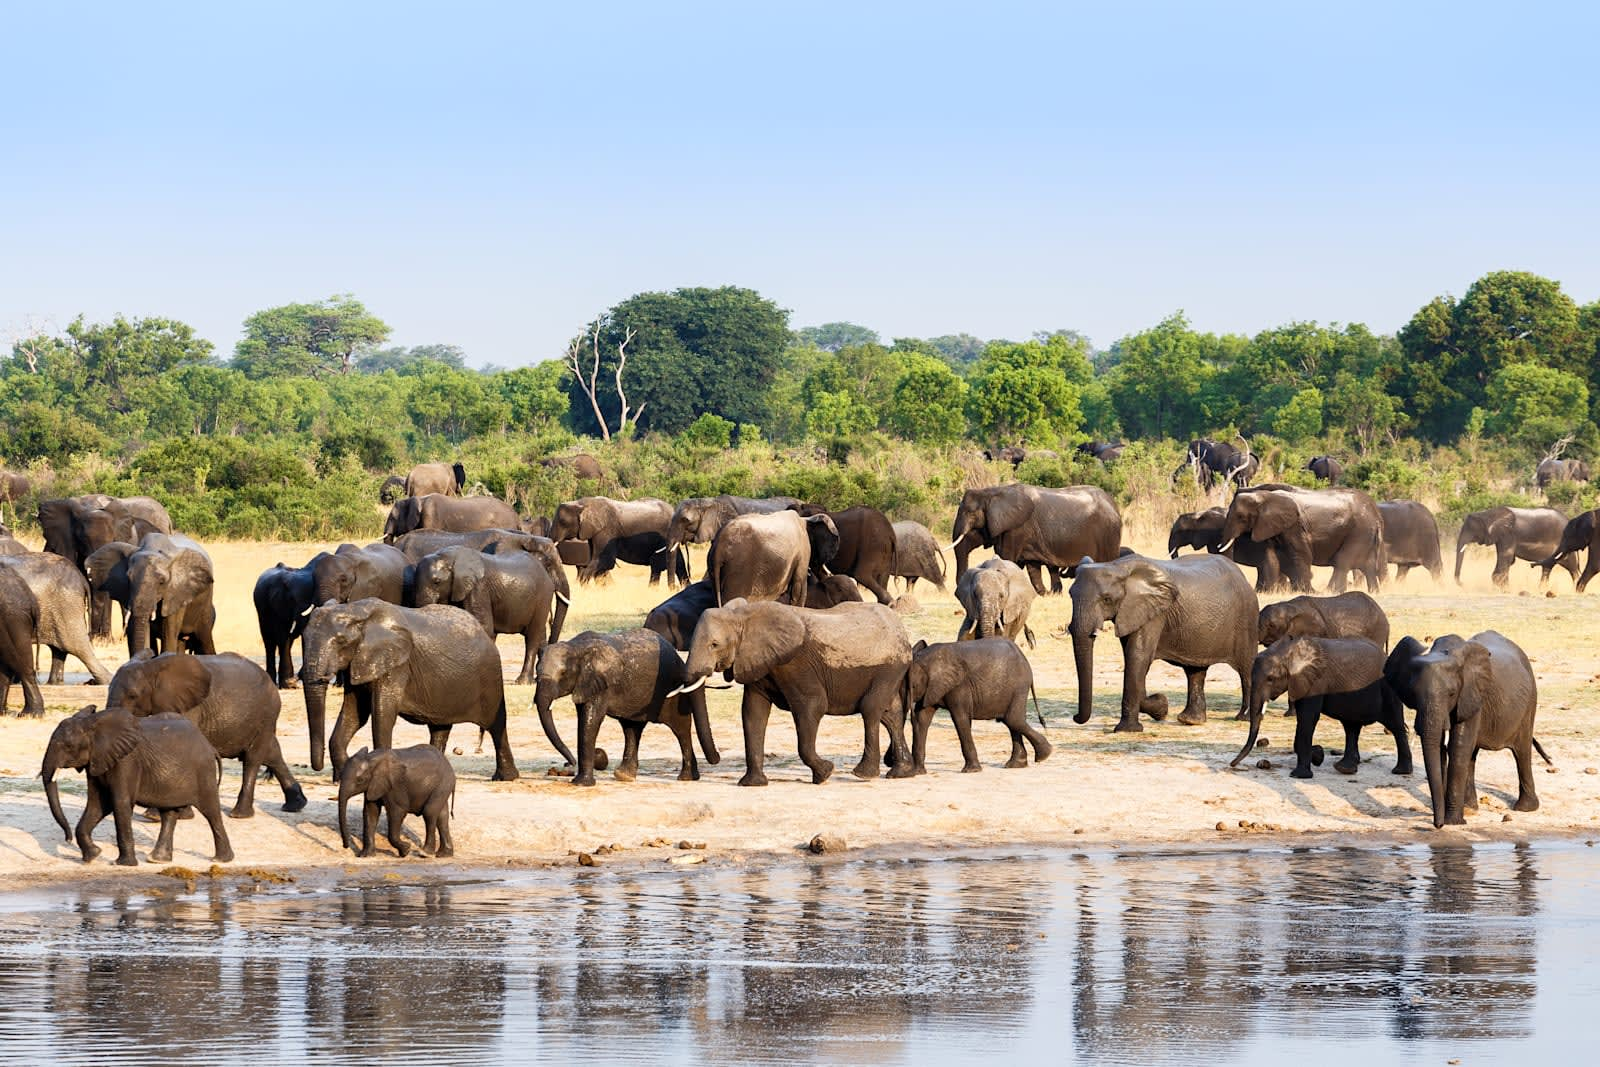 Drones and AI help stop poaching in Africa